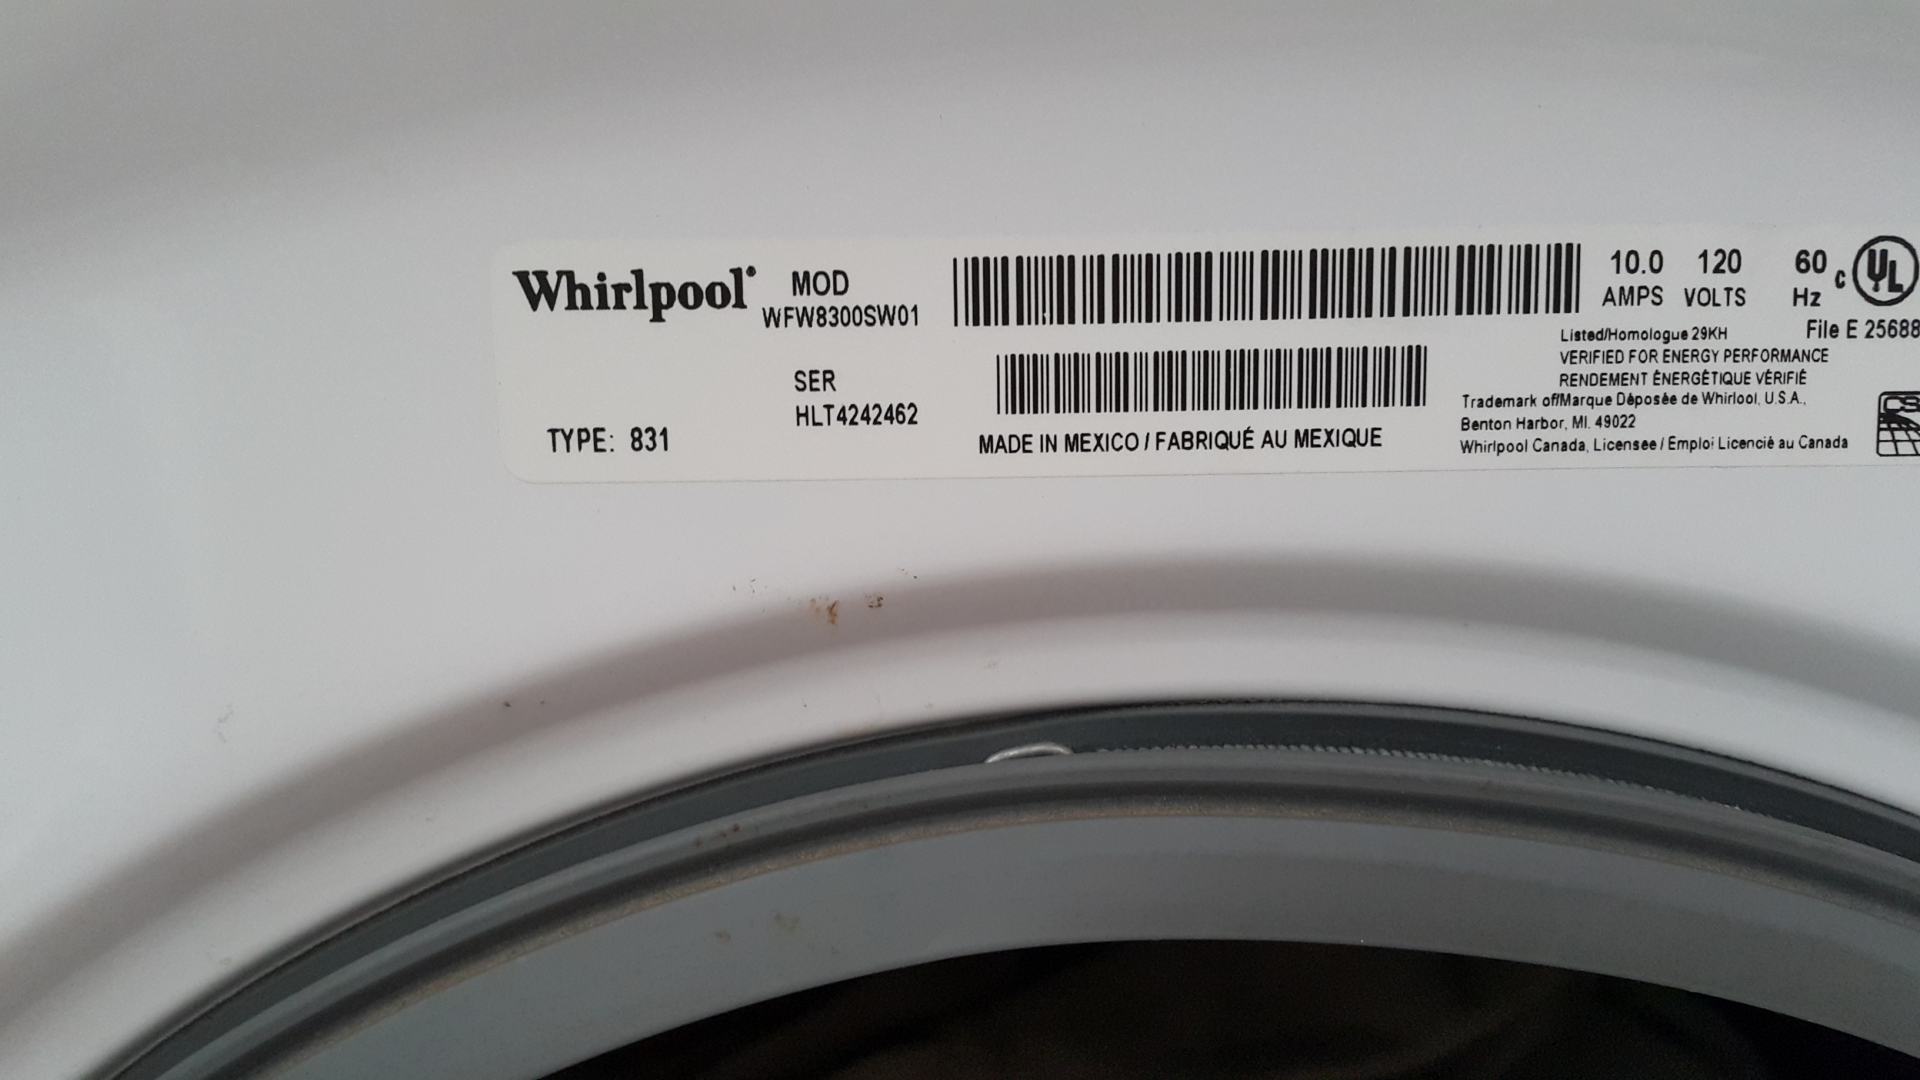 Washer Maytag Neptune MAH3000AWW - leaking water from the front ...